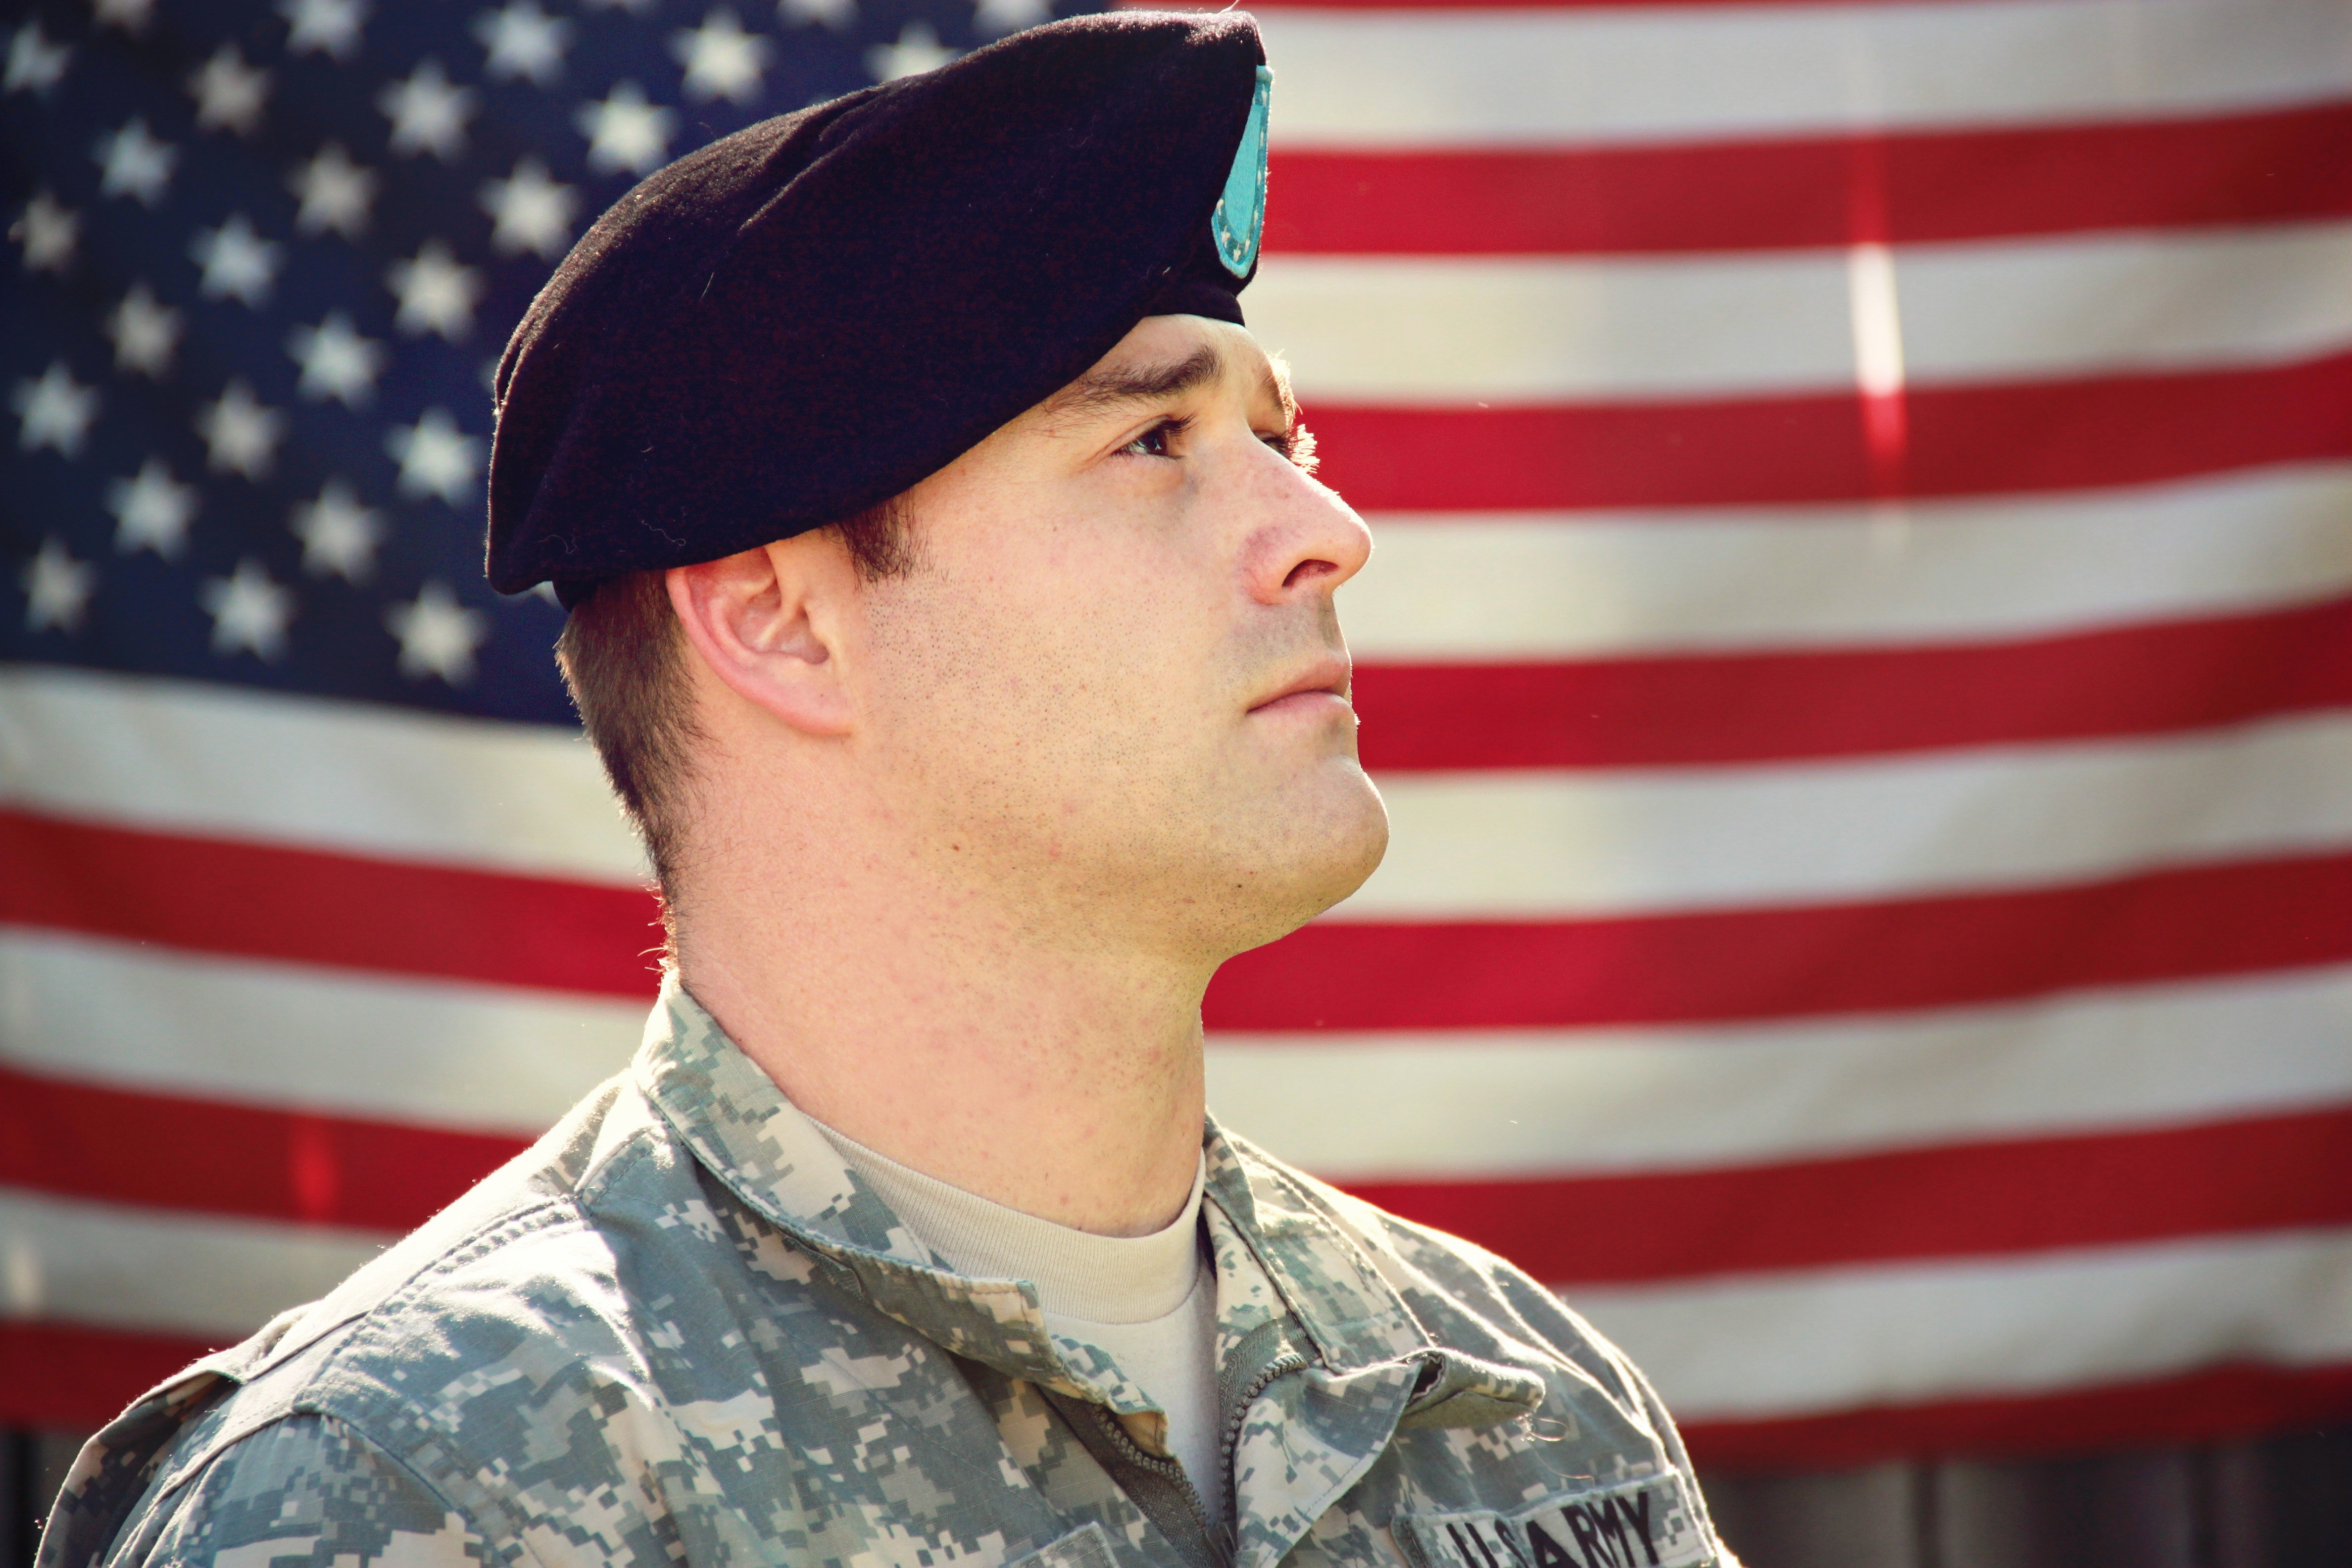 A soldier honoring the flag | Photo: Pexels